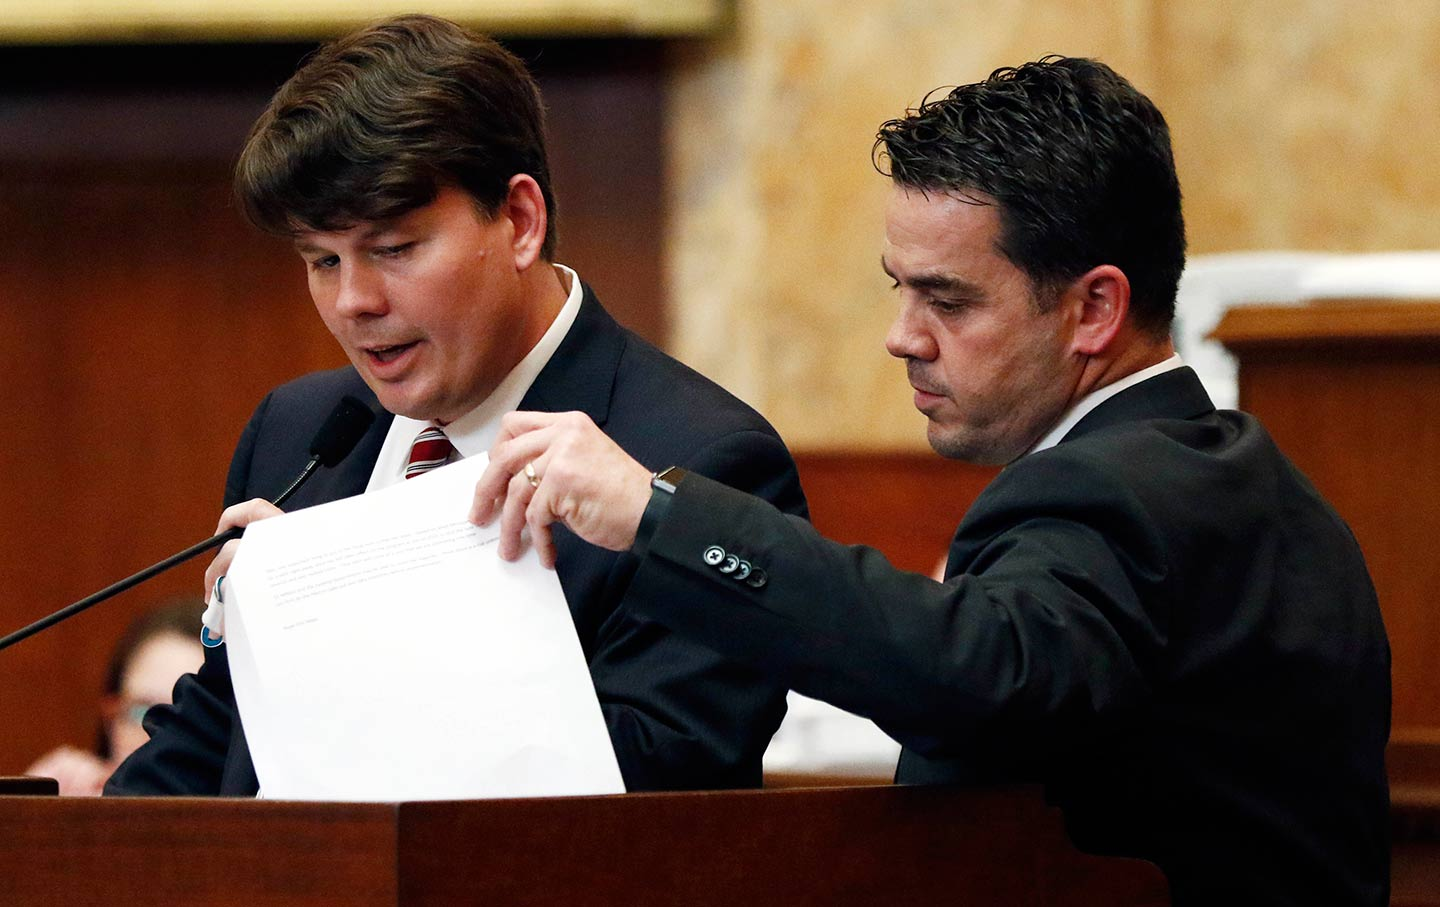 Mississippi State Representative Chris Brown (right) Introduced A New Bill  ϻ�that Would Outsource Eligibility Verification For Social Support Programs